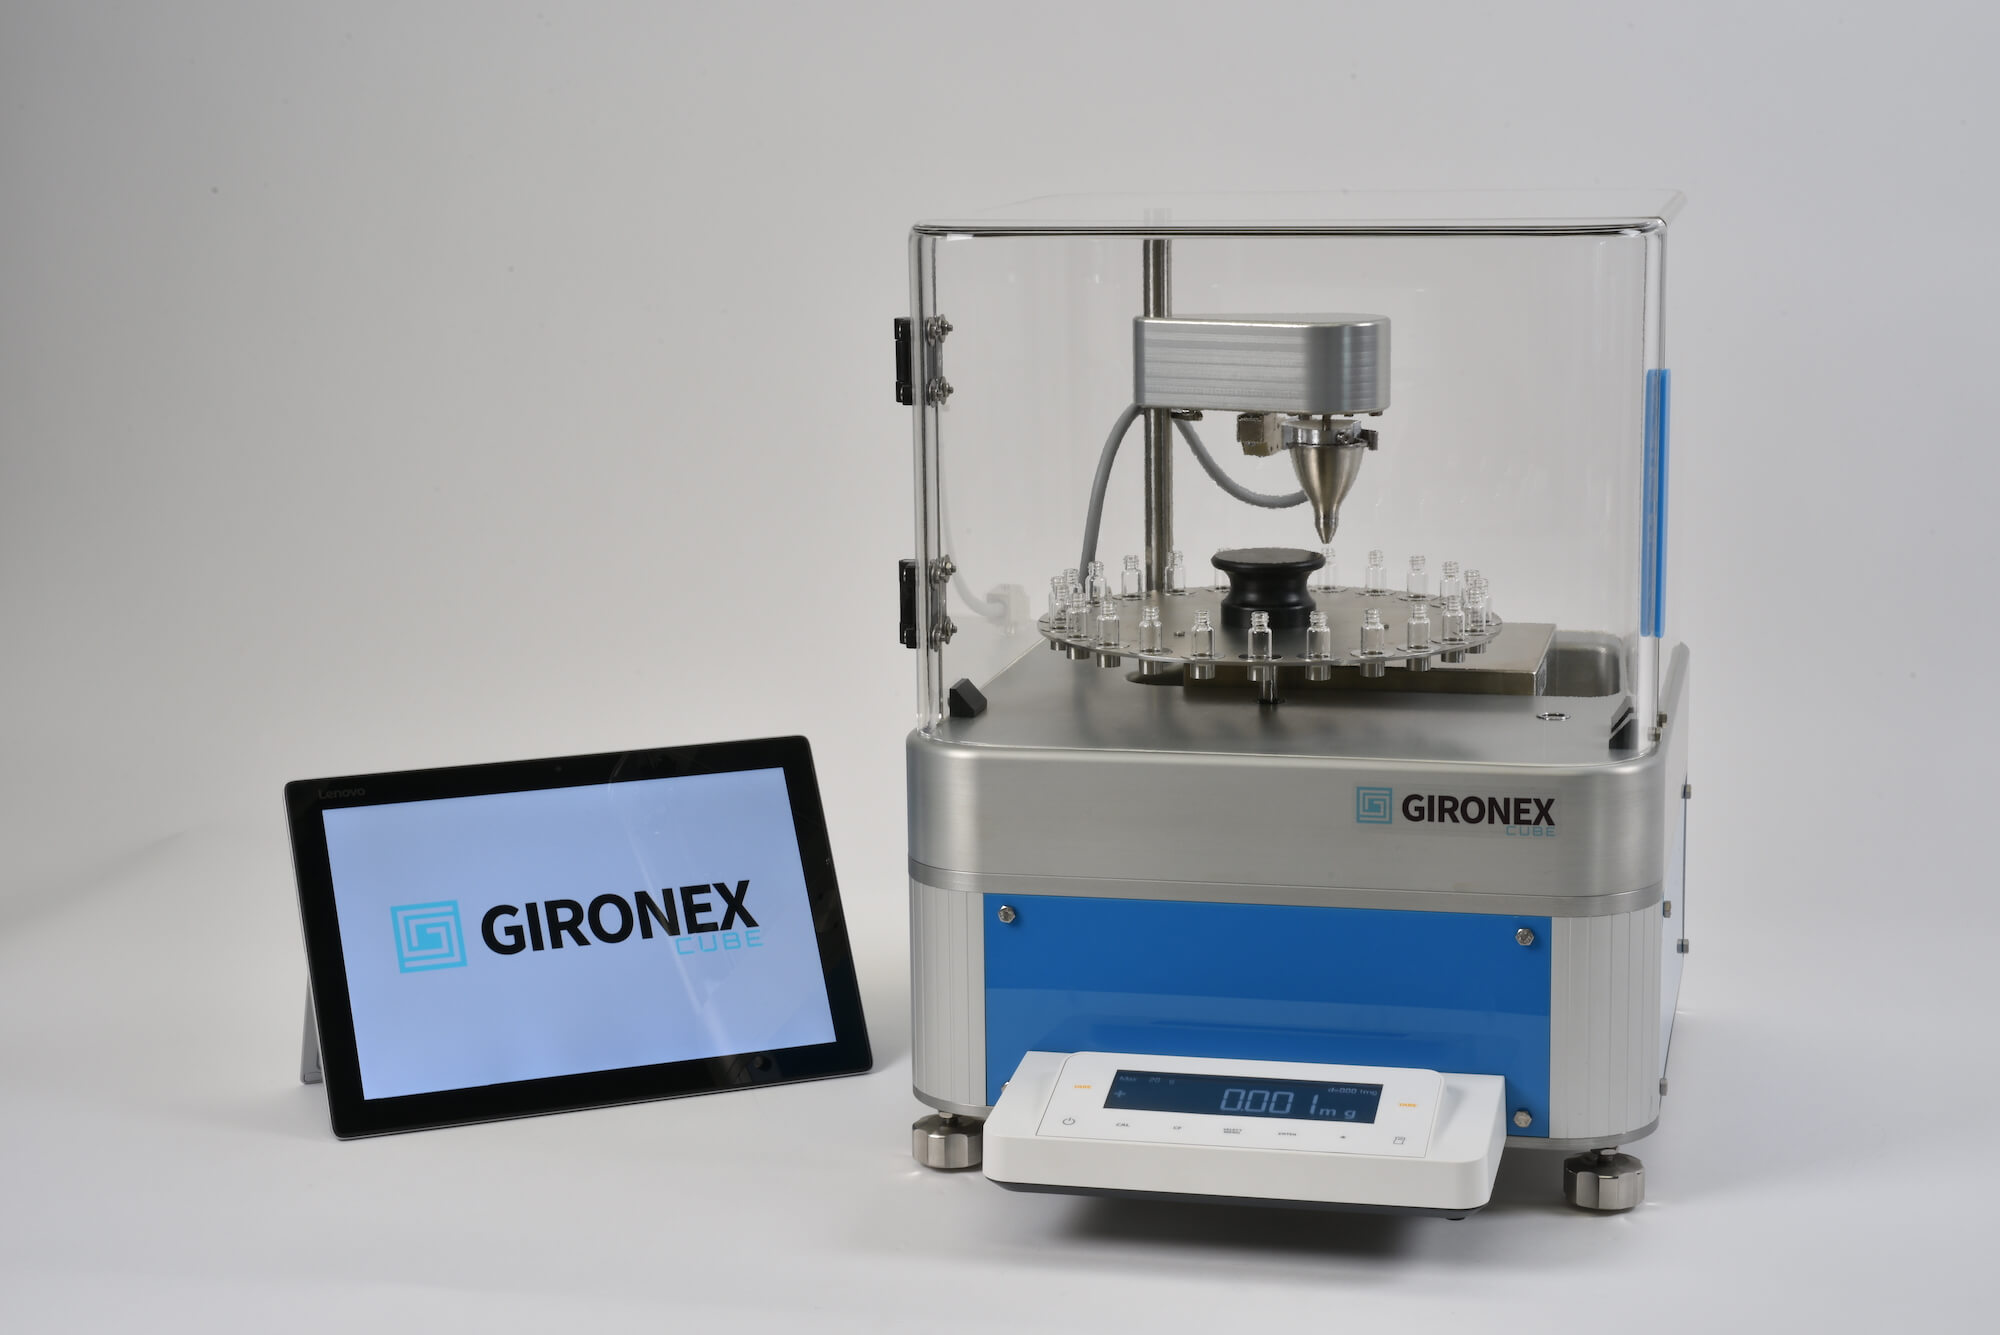 GiroNEX launches Cube Plus for use in early phase clinical trials manufacturing